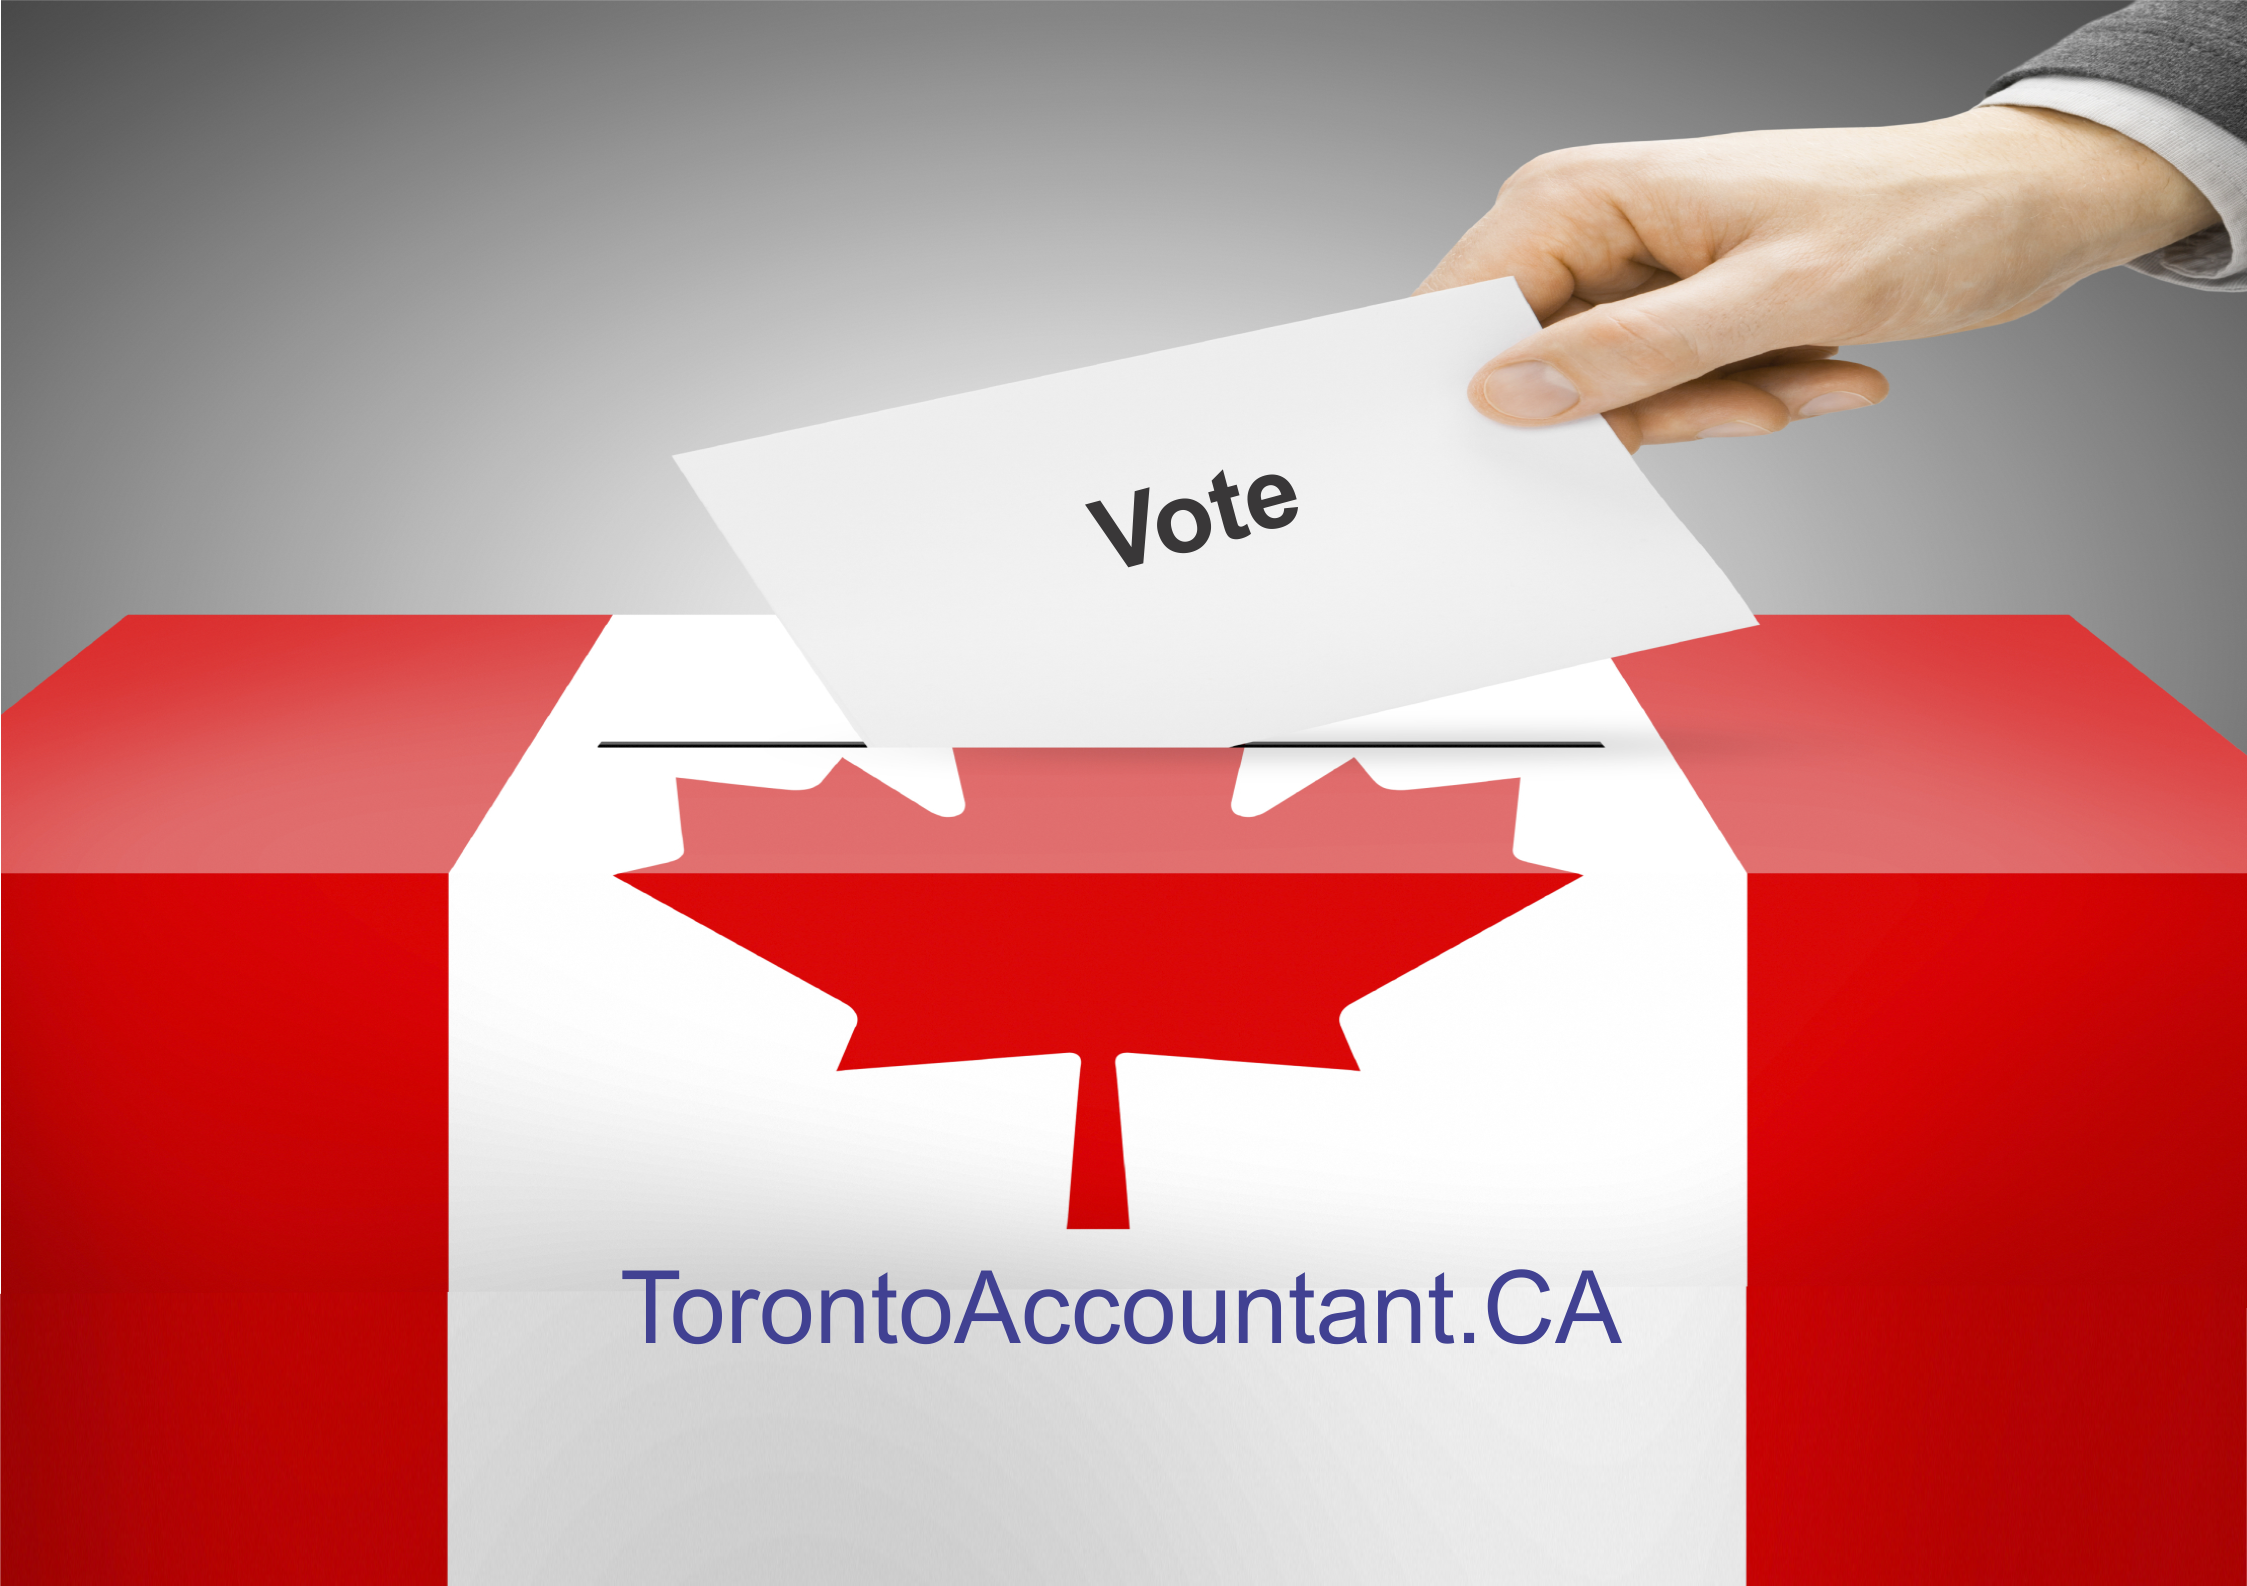 Is Changing the Canadian Voting System a Outstanding Idea?